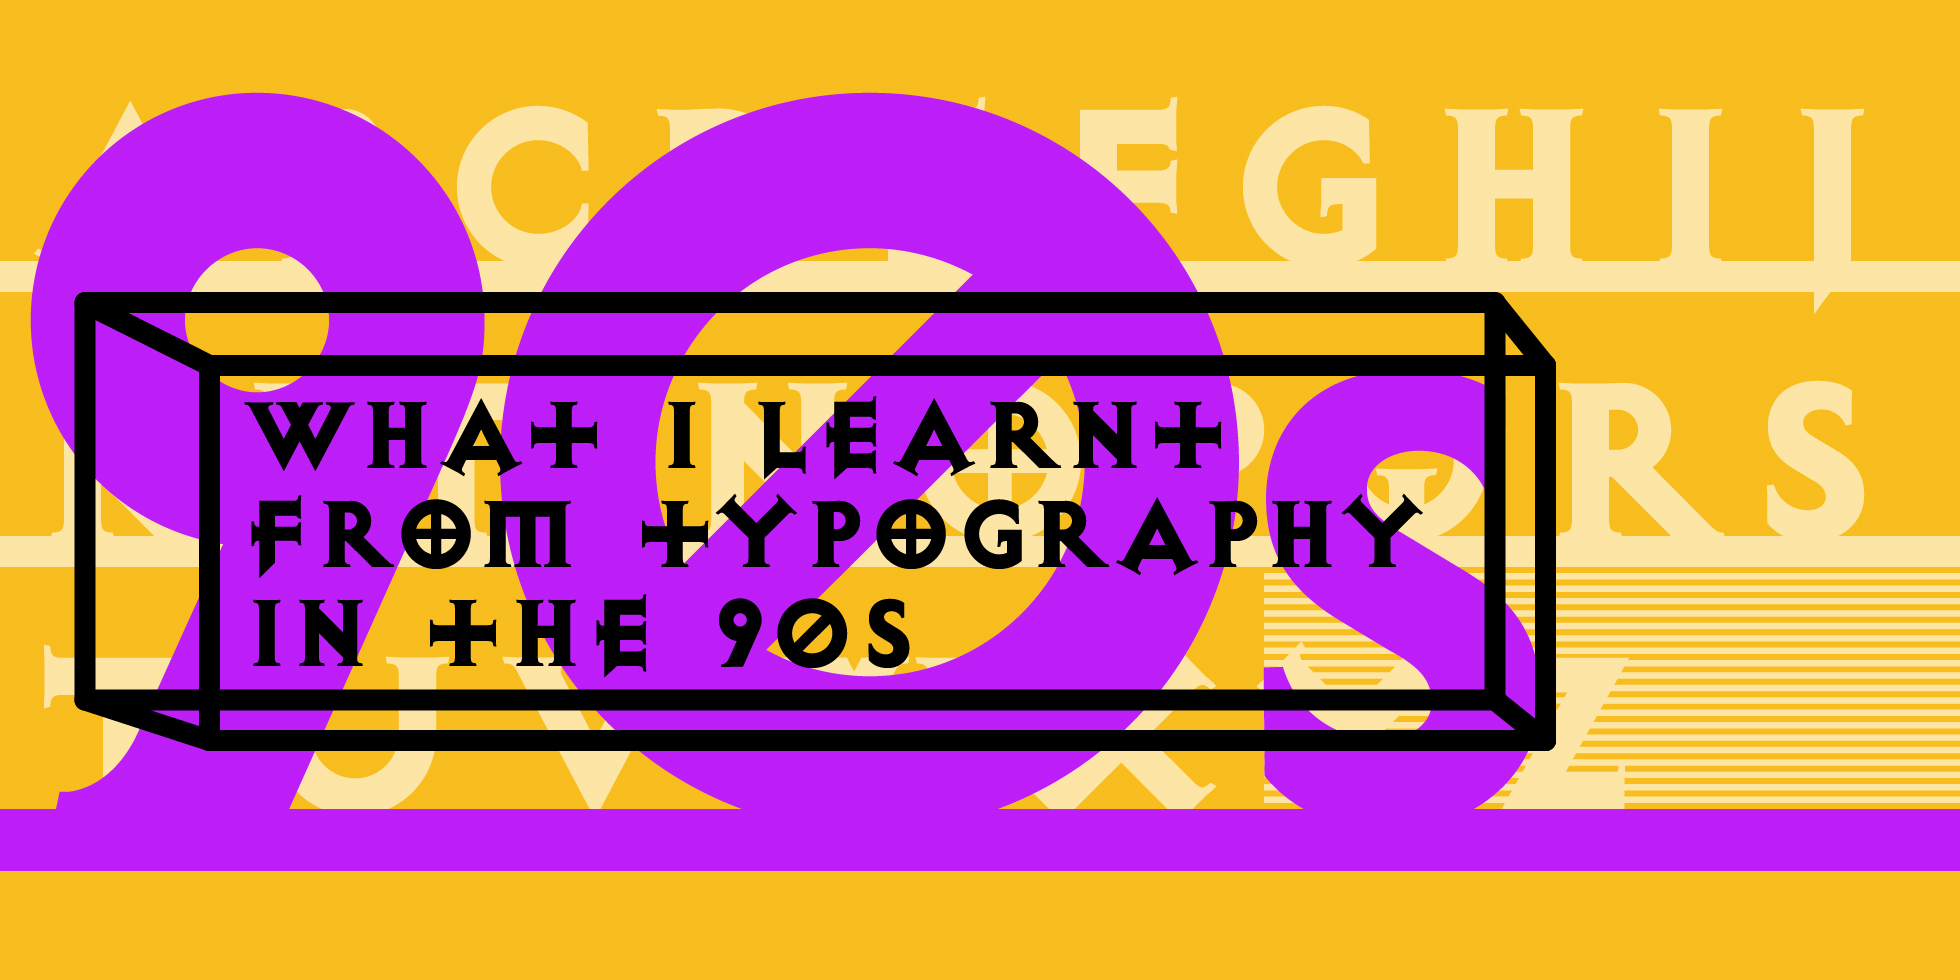 What I learnt from typography in the 90s